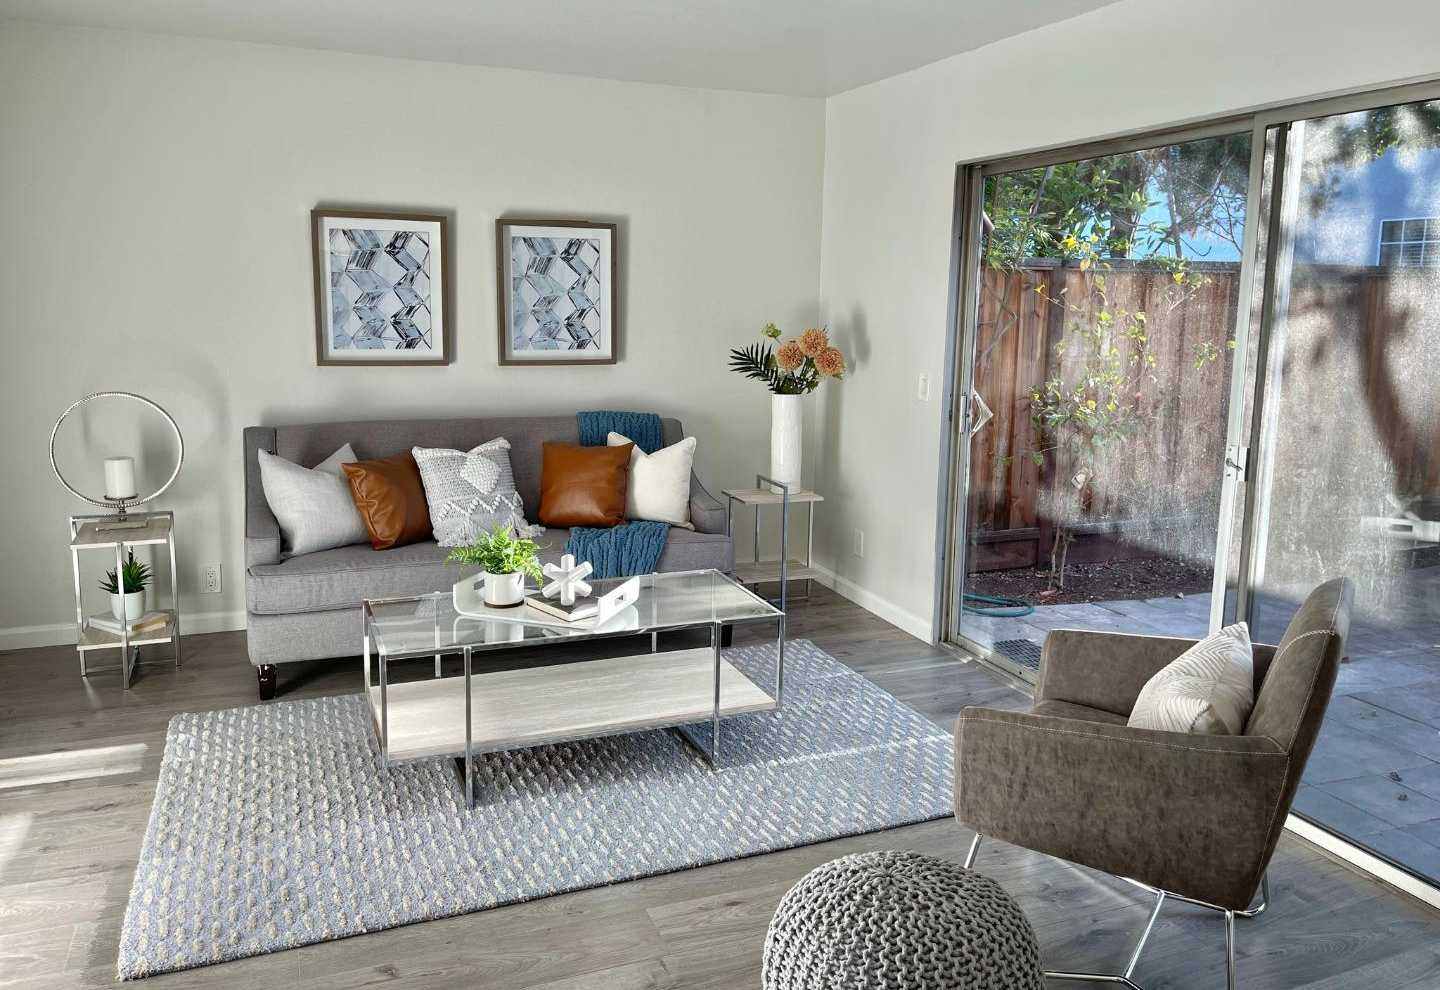 $1,048,000 - 2Br/2Ba -  for Sale in Palo Alto